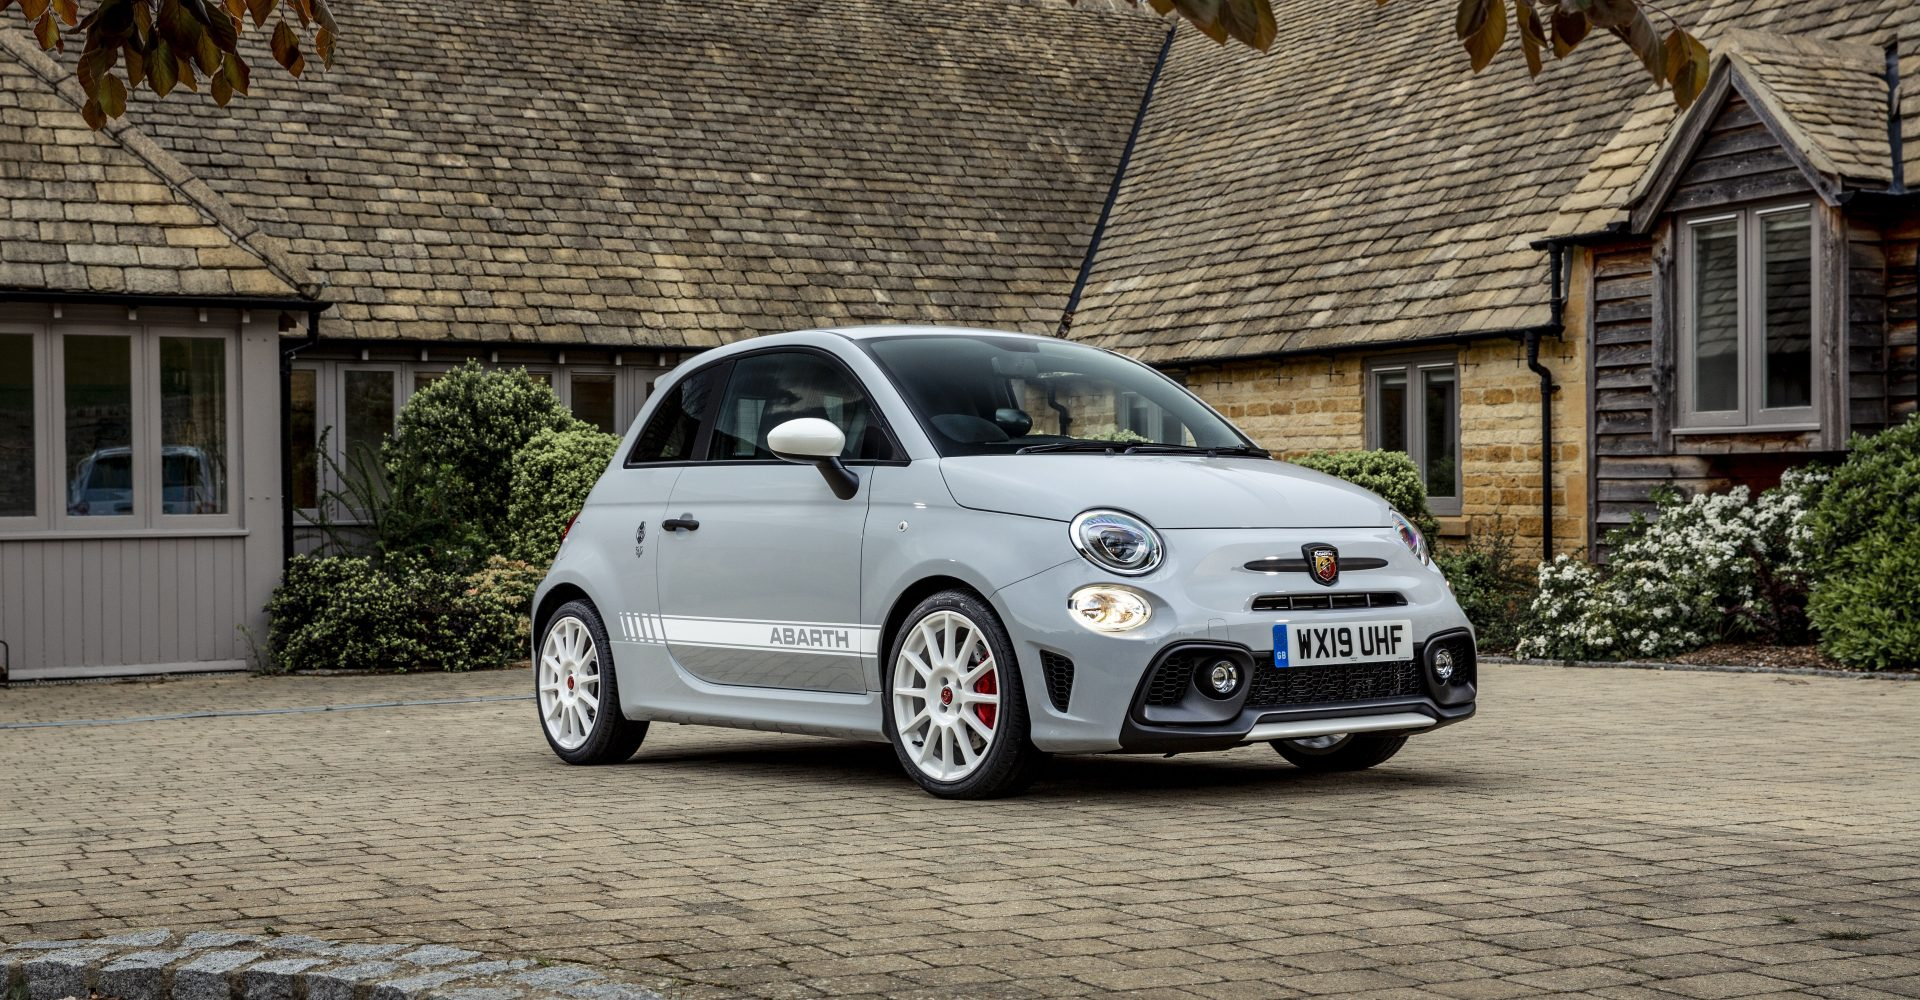 First Drive: Abarth's 595 Esseesse is a flawed but fun hot hatch